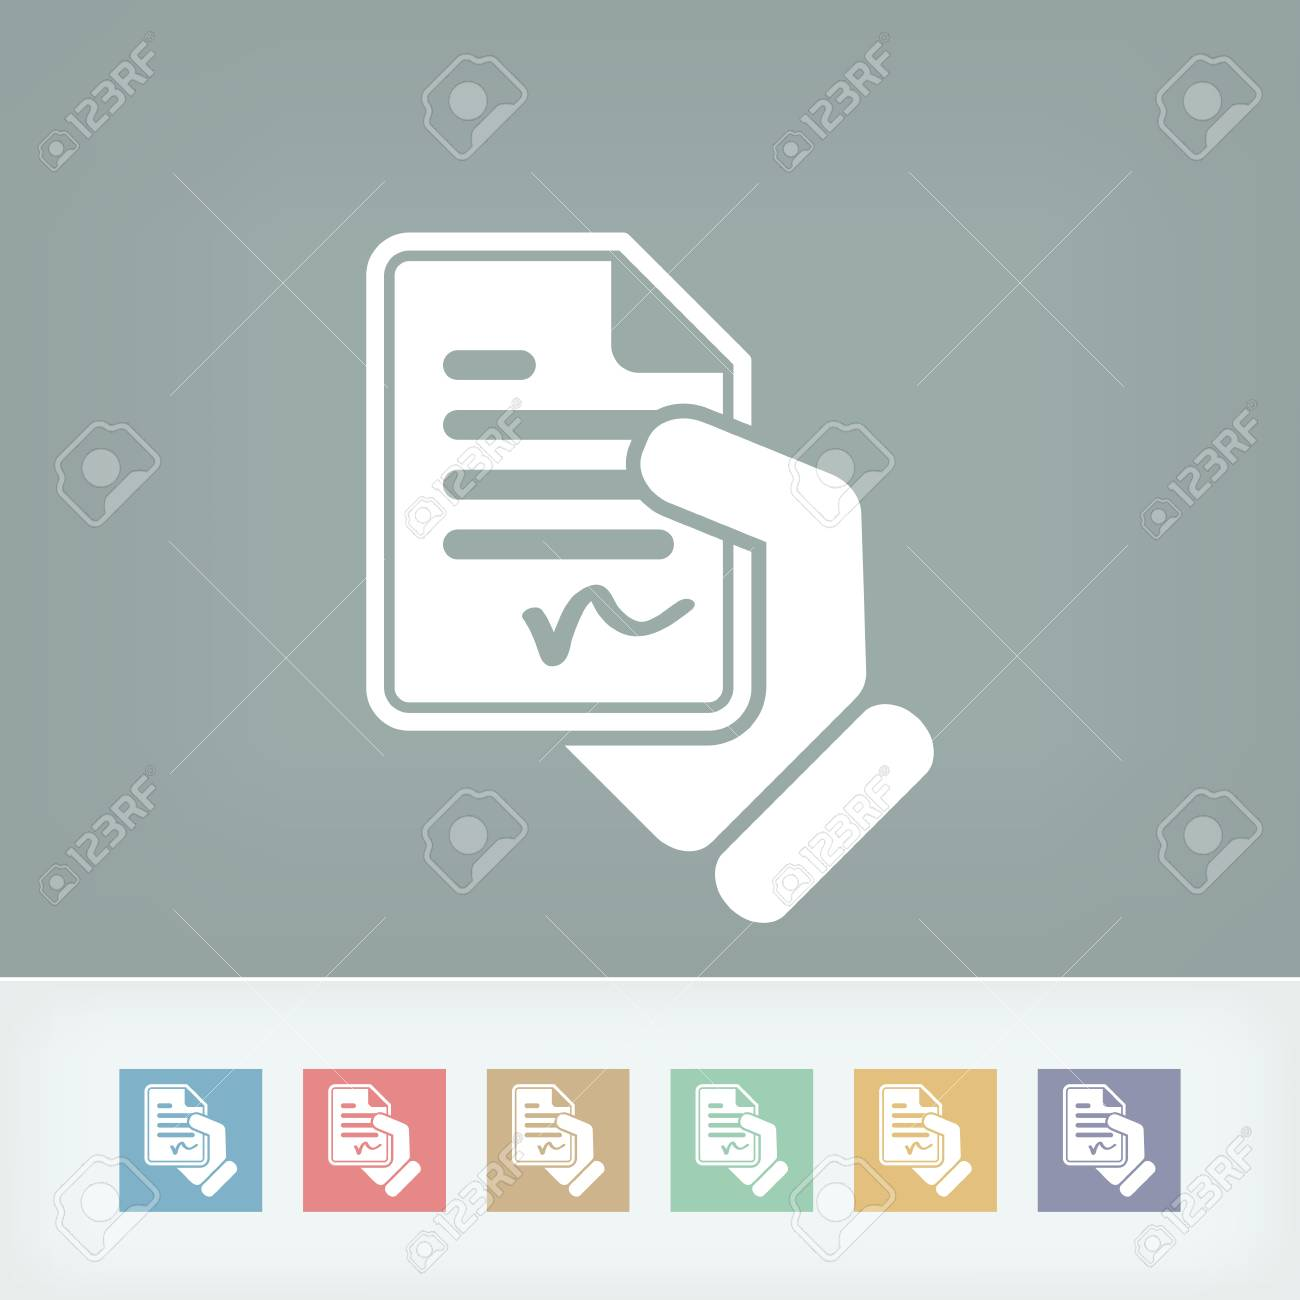 Document signed icon Stock Vector - 27149780